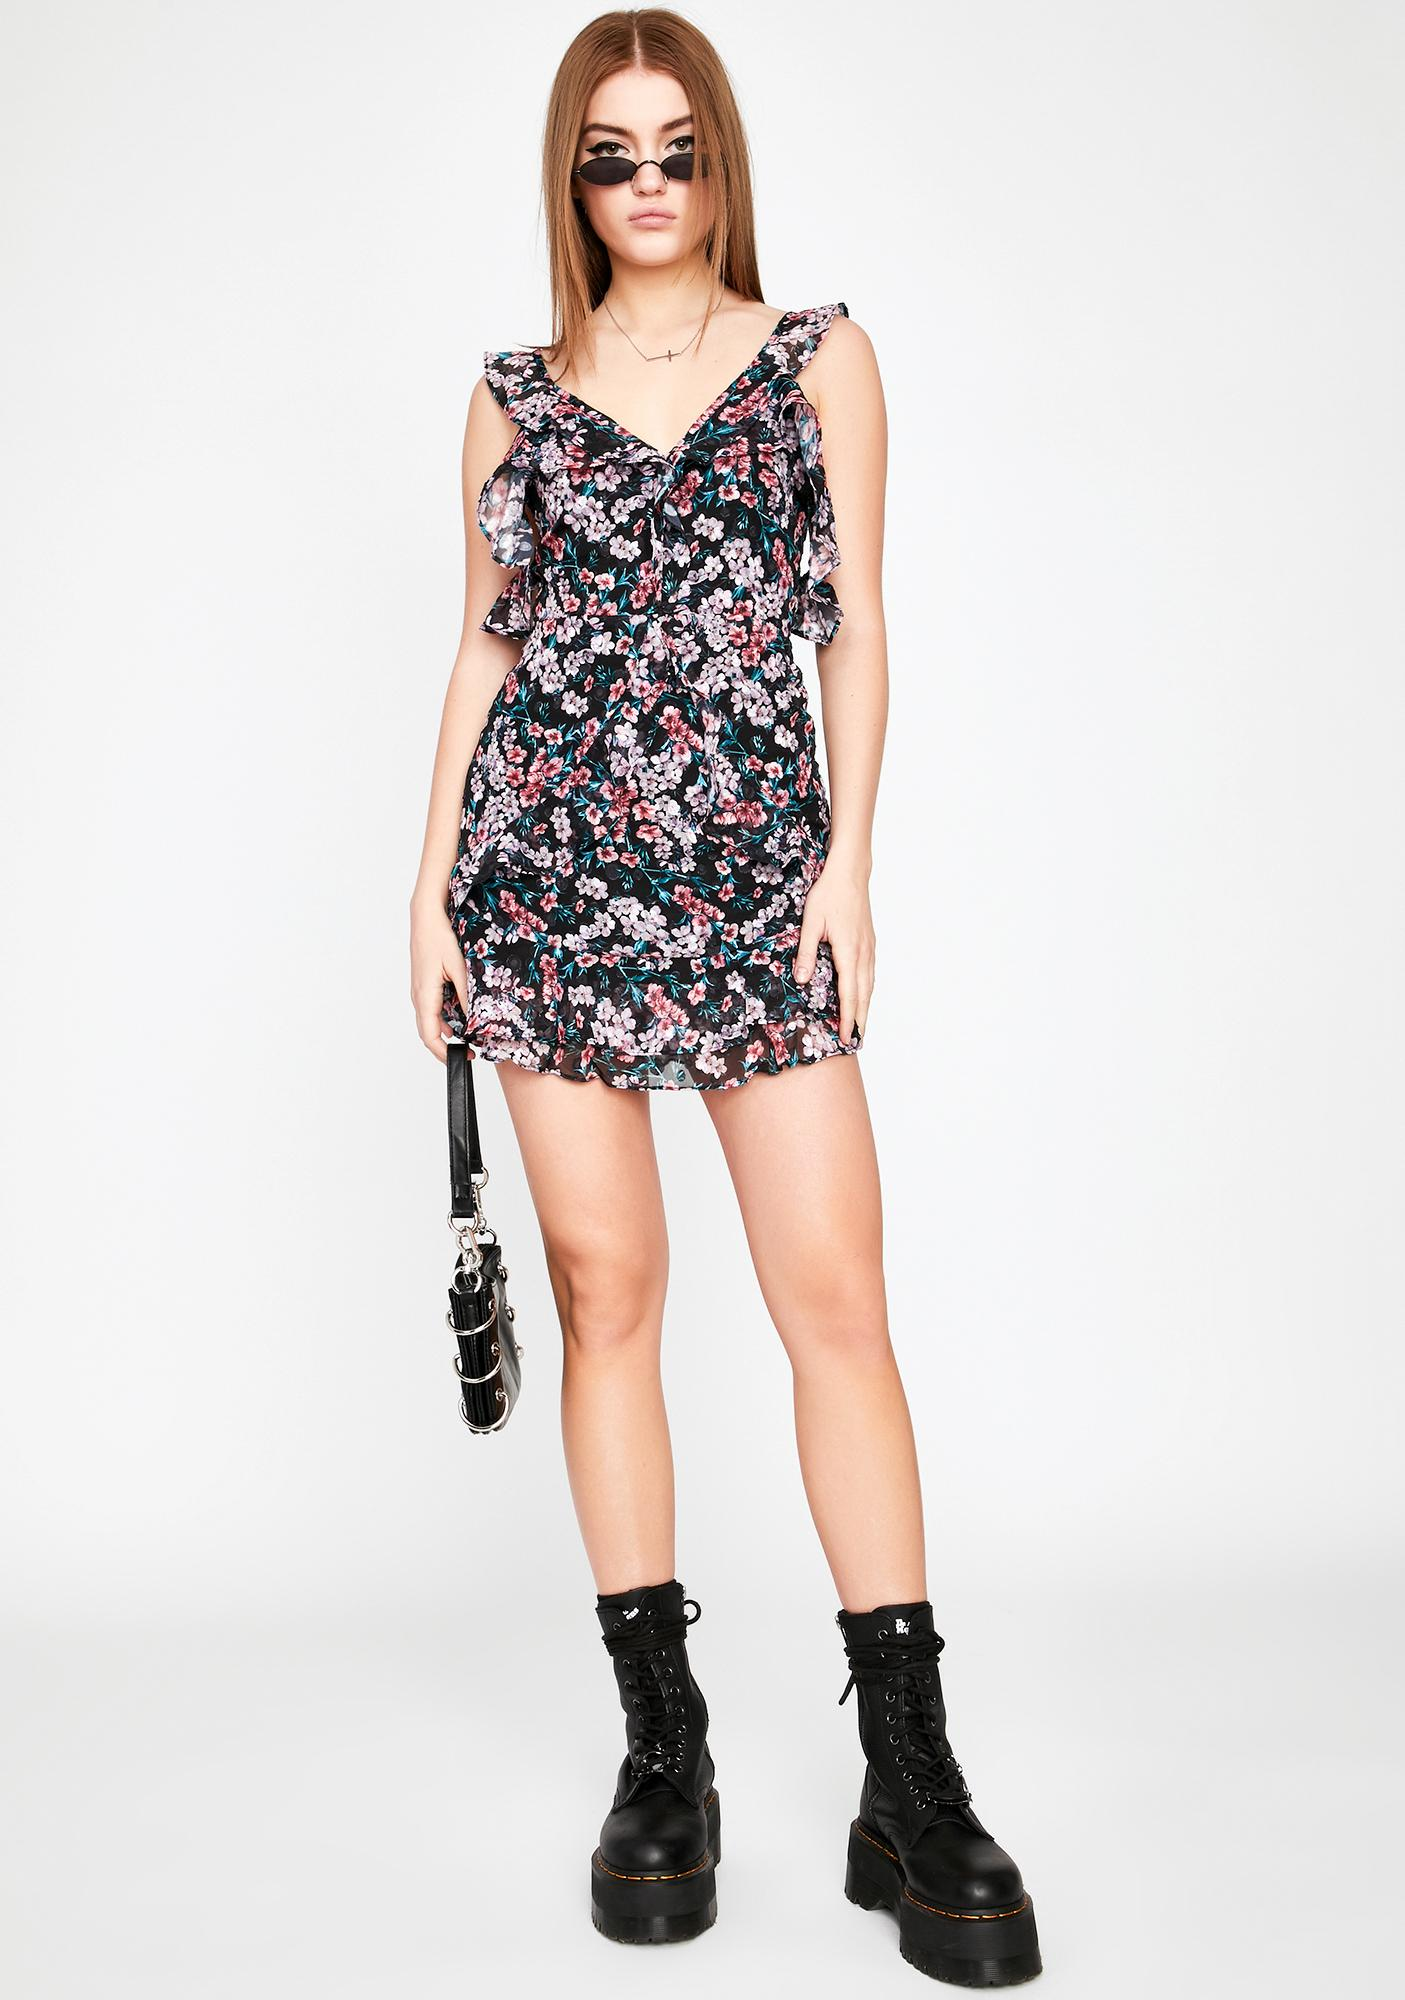 Positively Yours Ruffle Dress